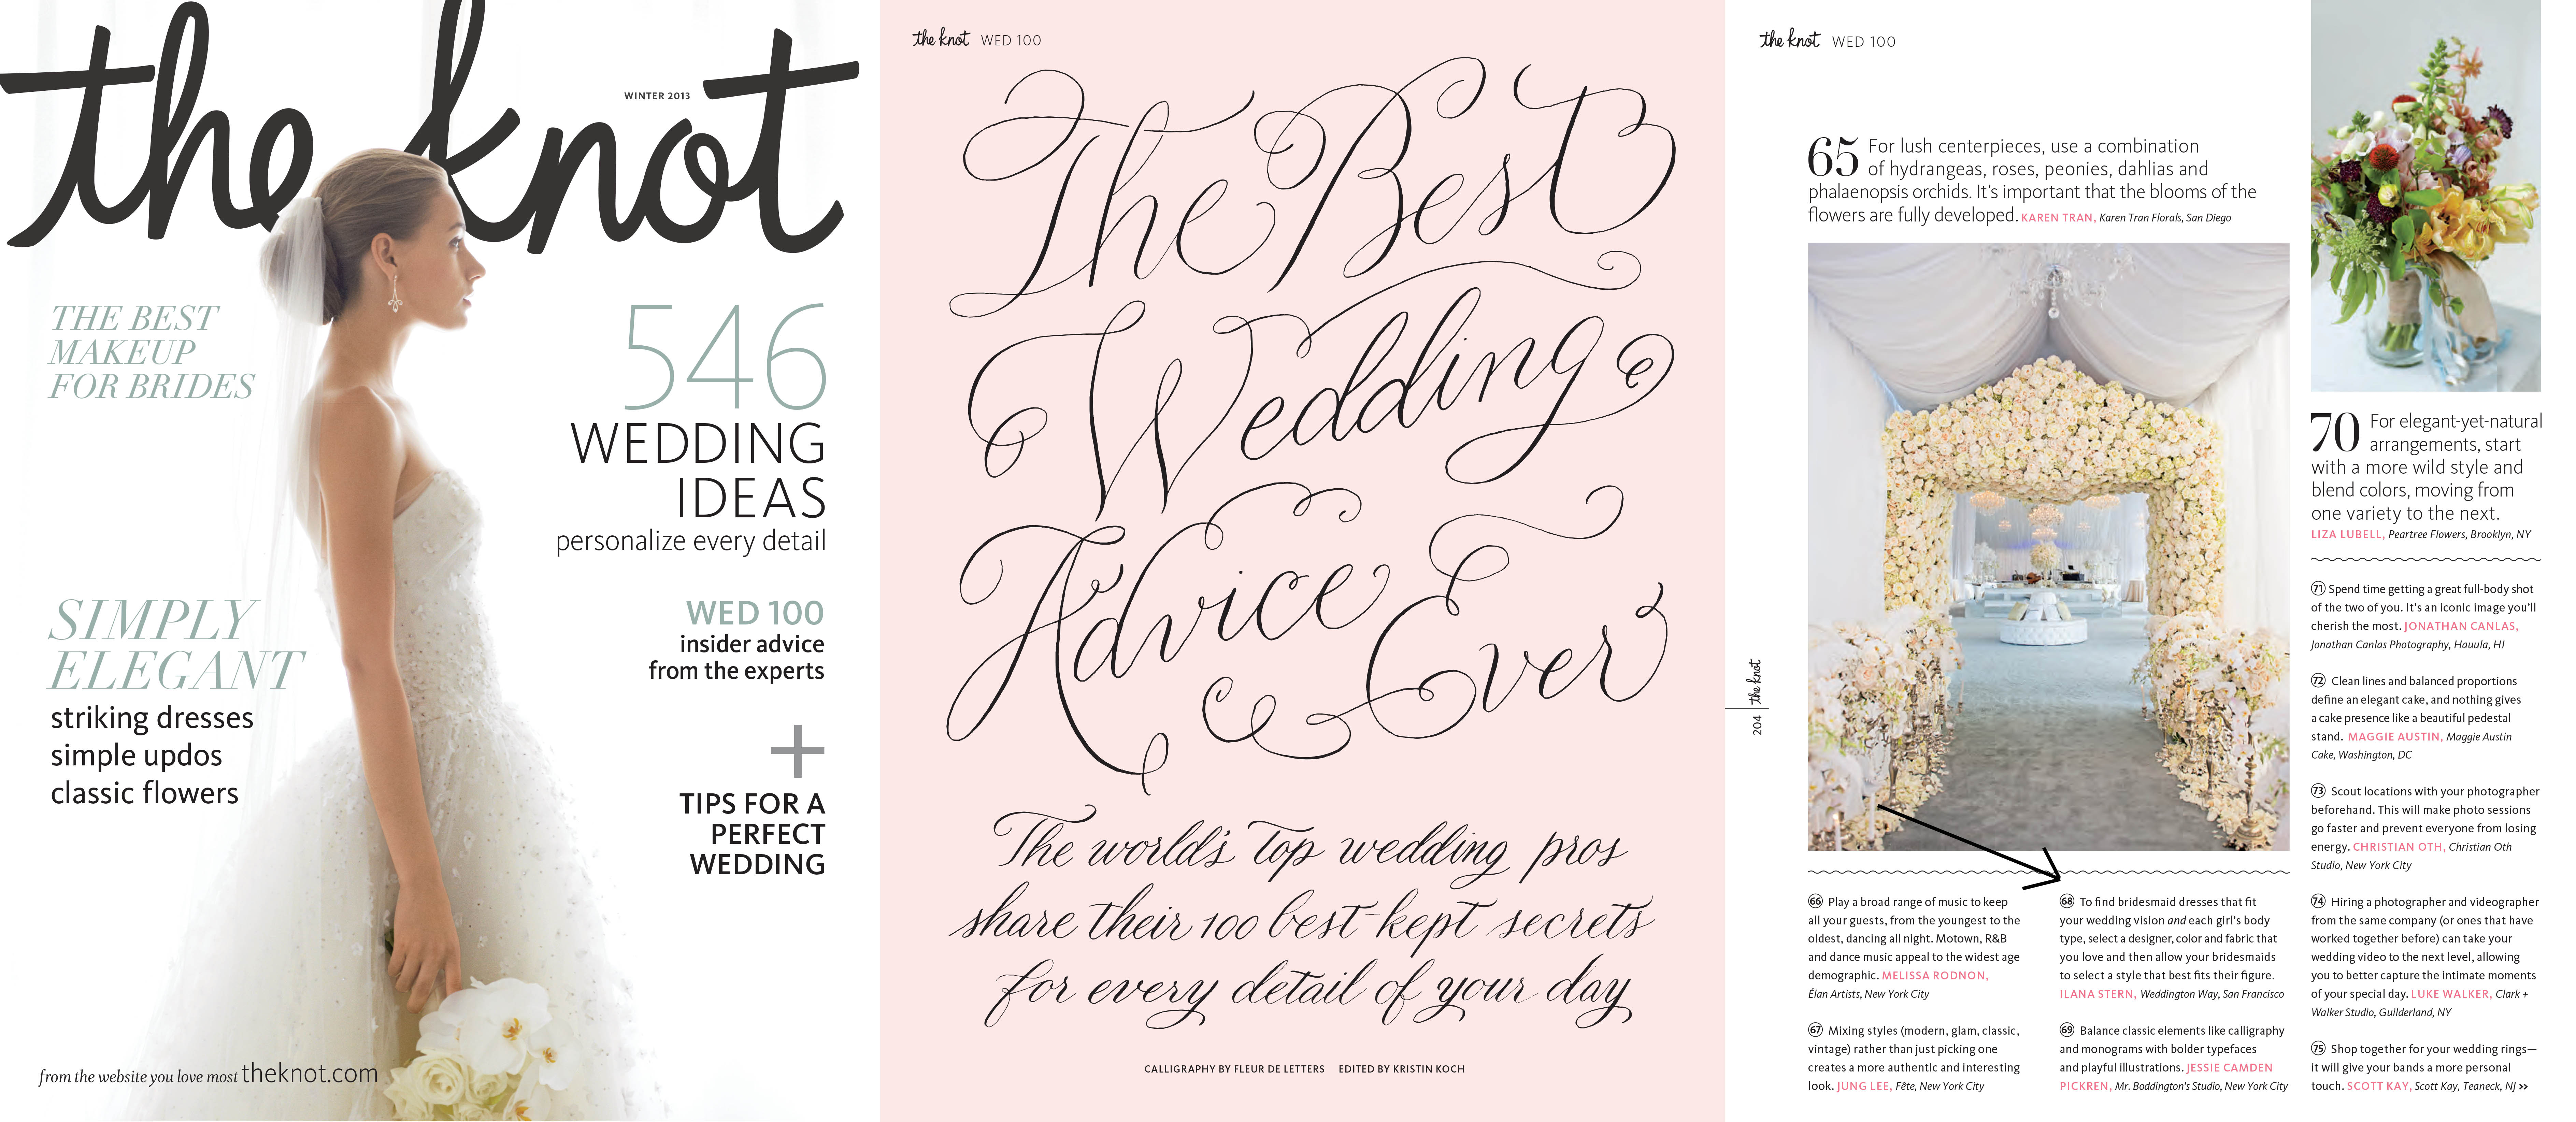 The Knot featured quote from Weddington Way CEO Ilana Stern. October 2013